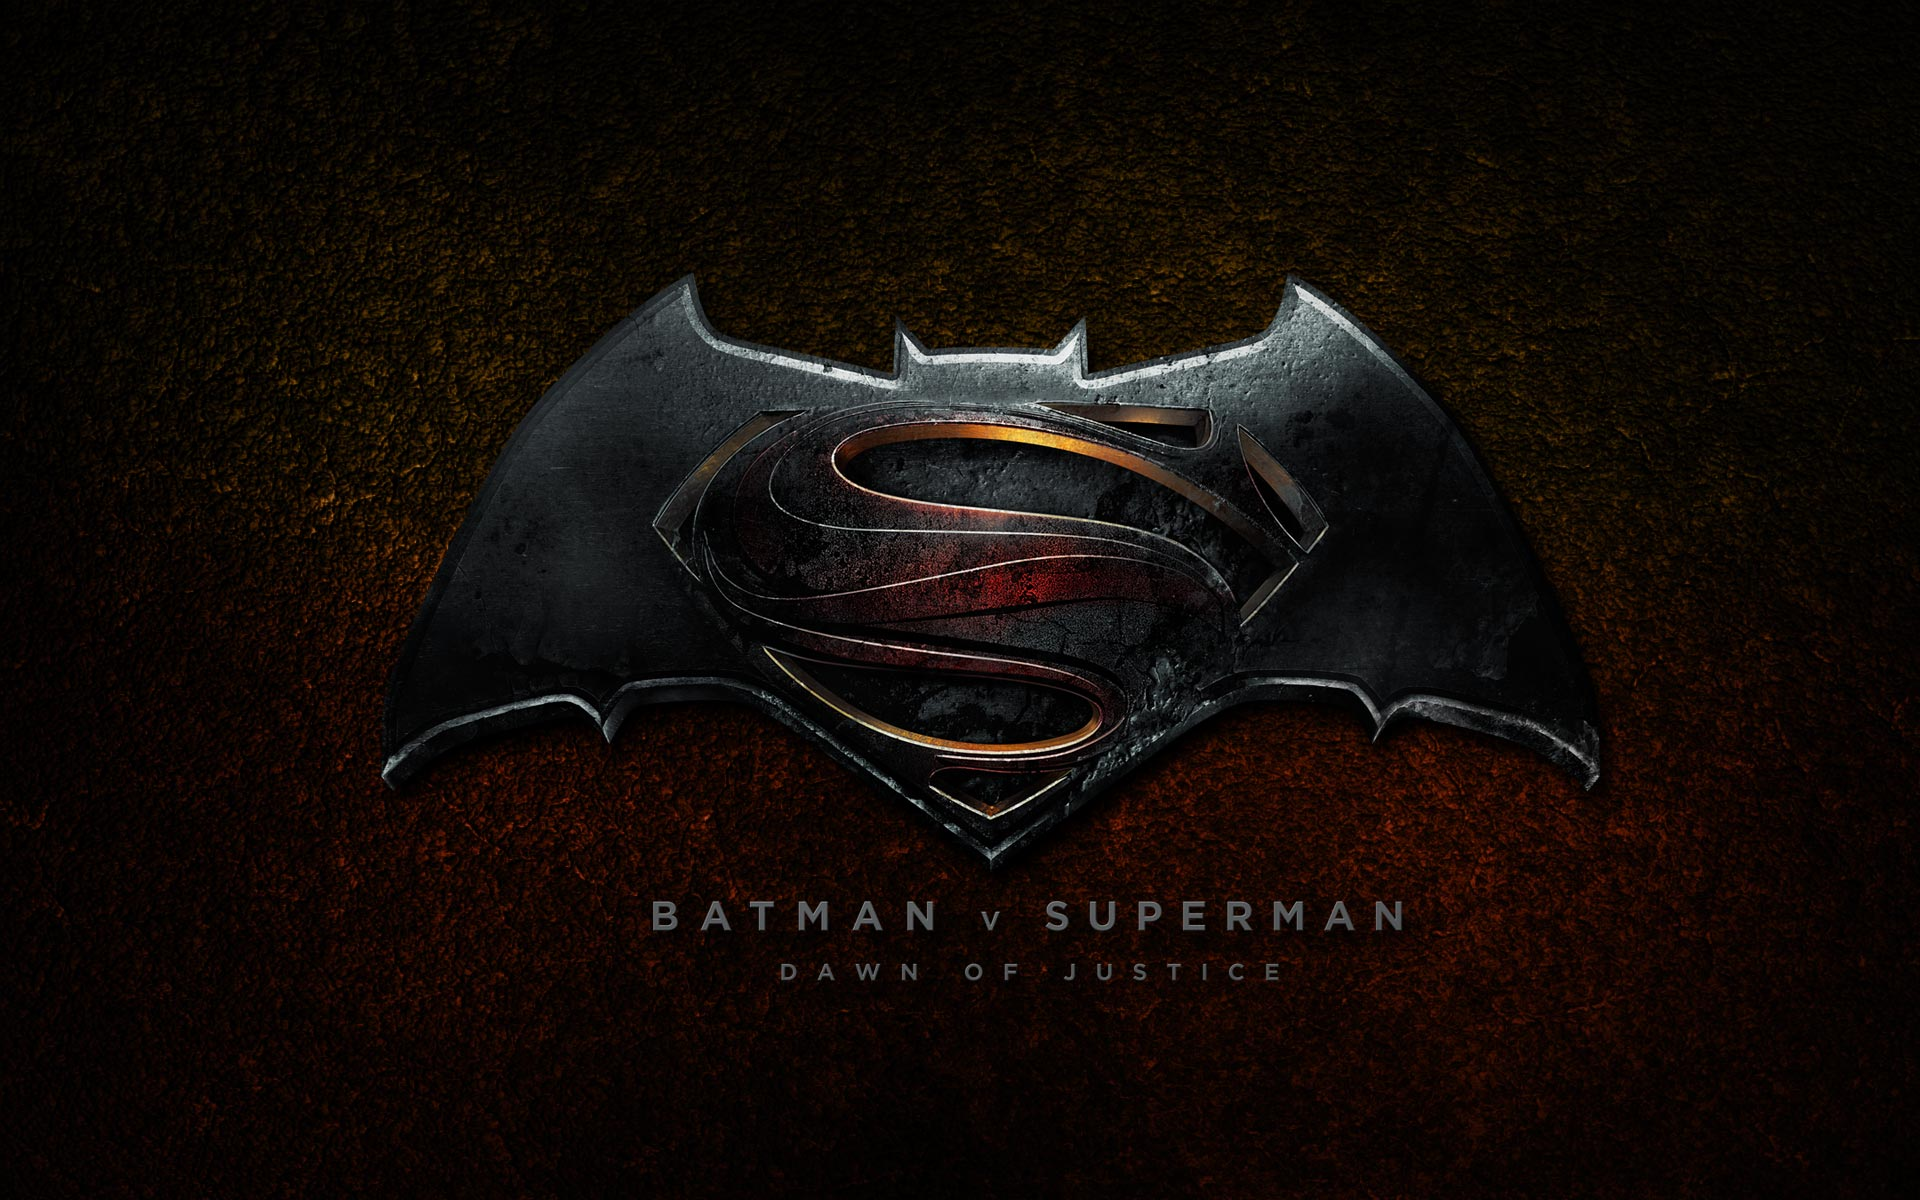 Batman Vs Superman 2016 Logo Wallpaper HD1